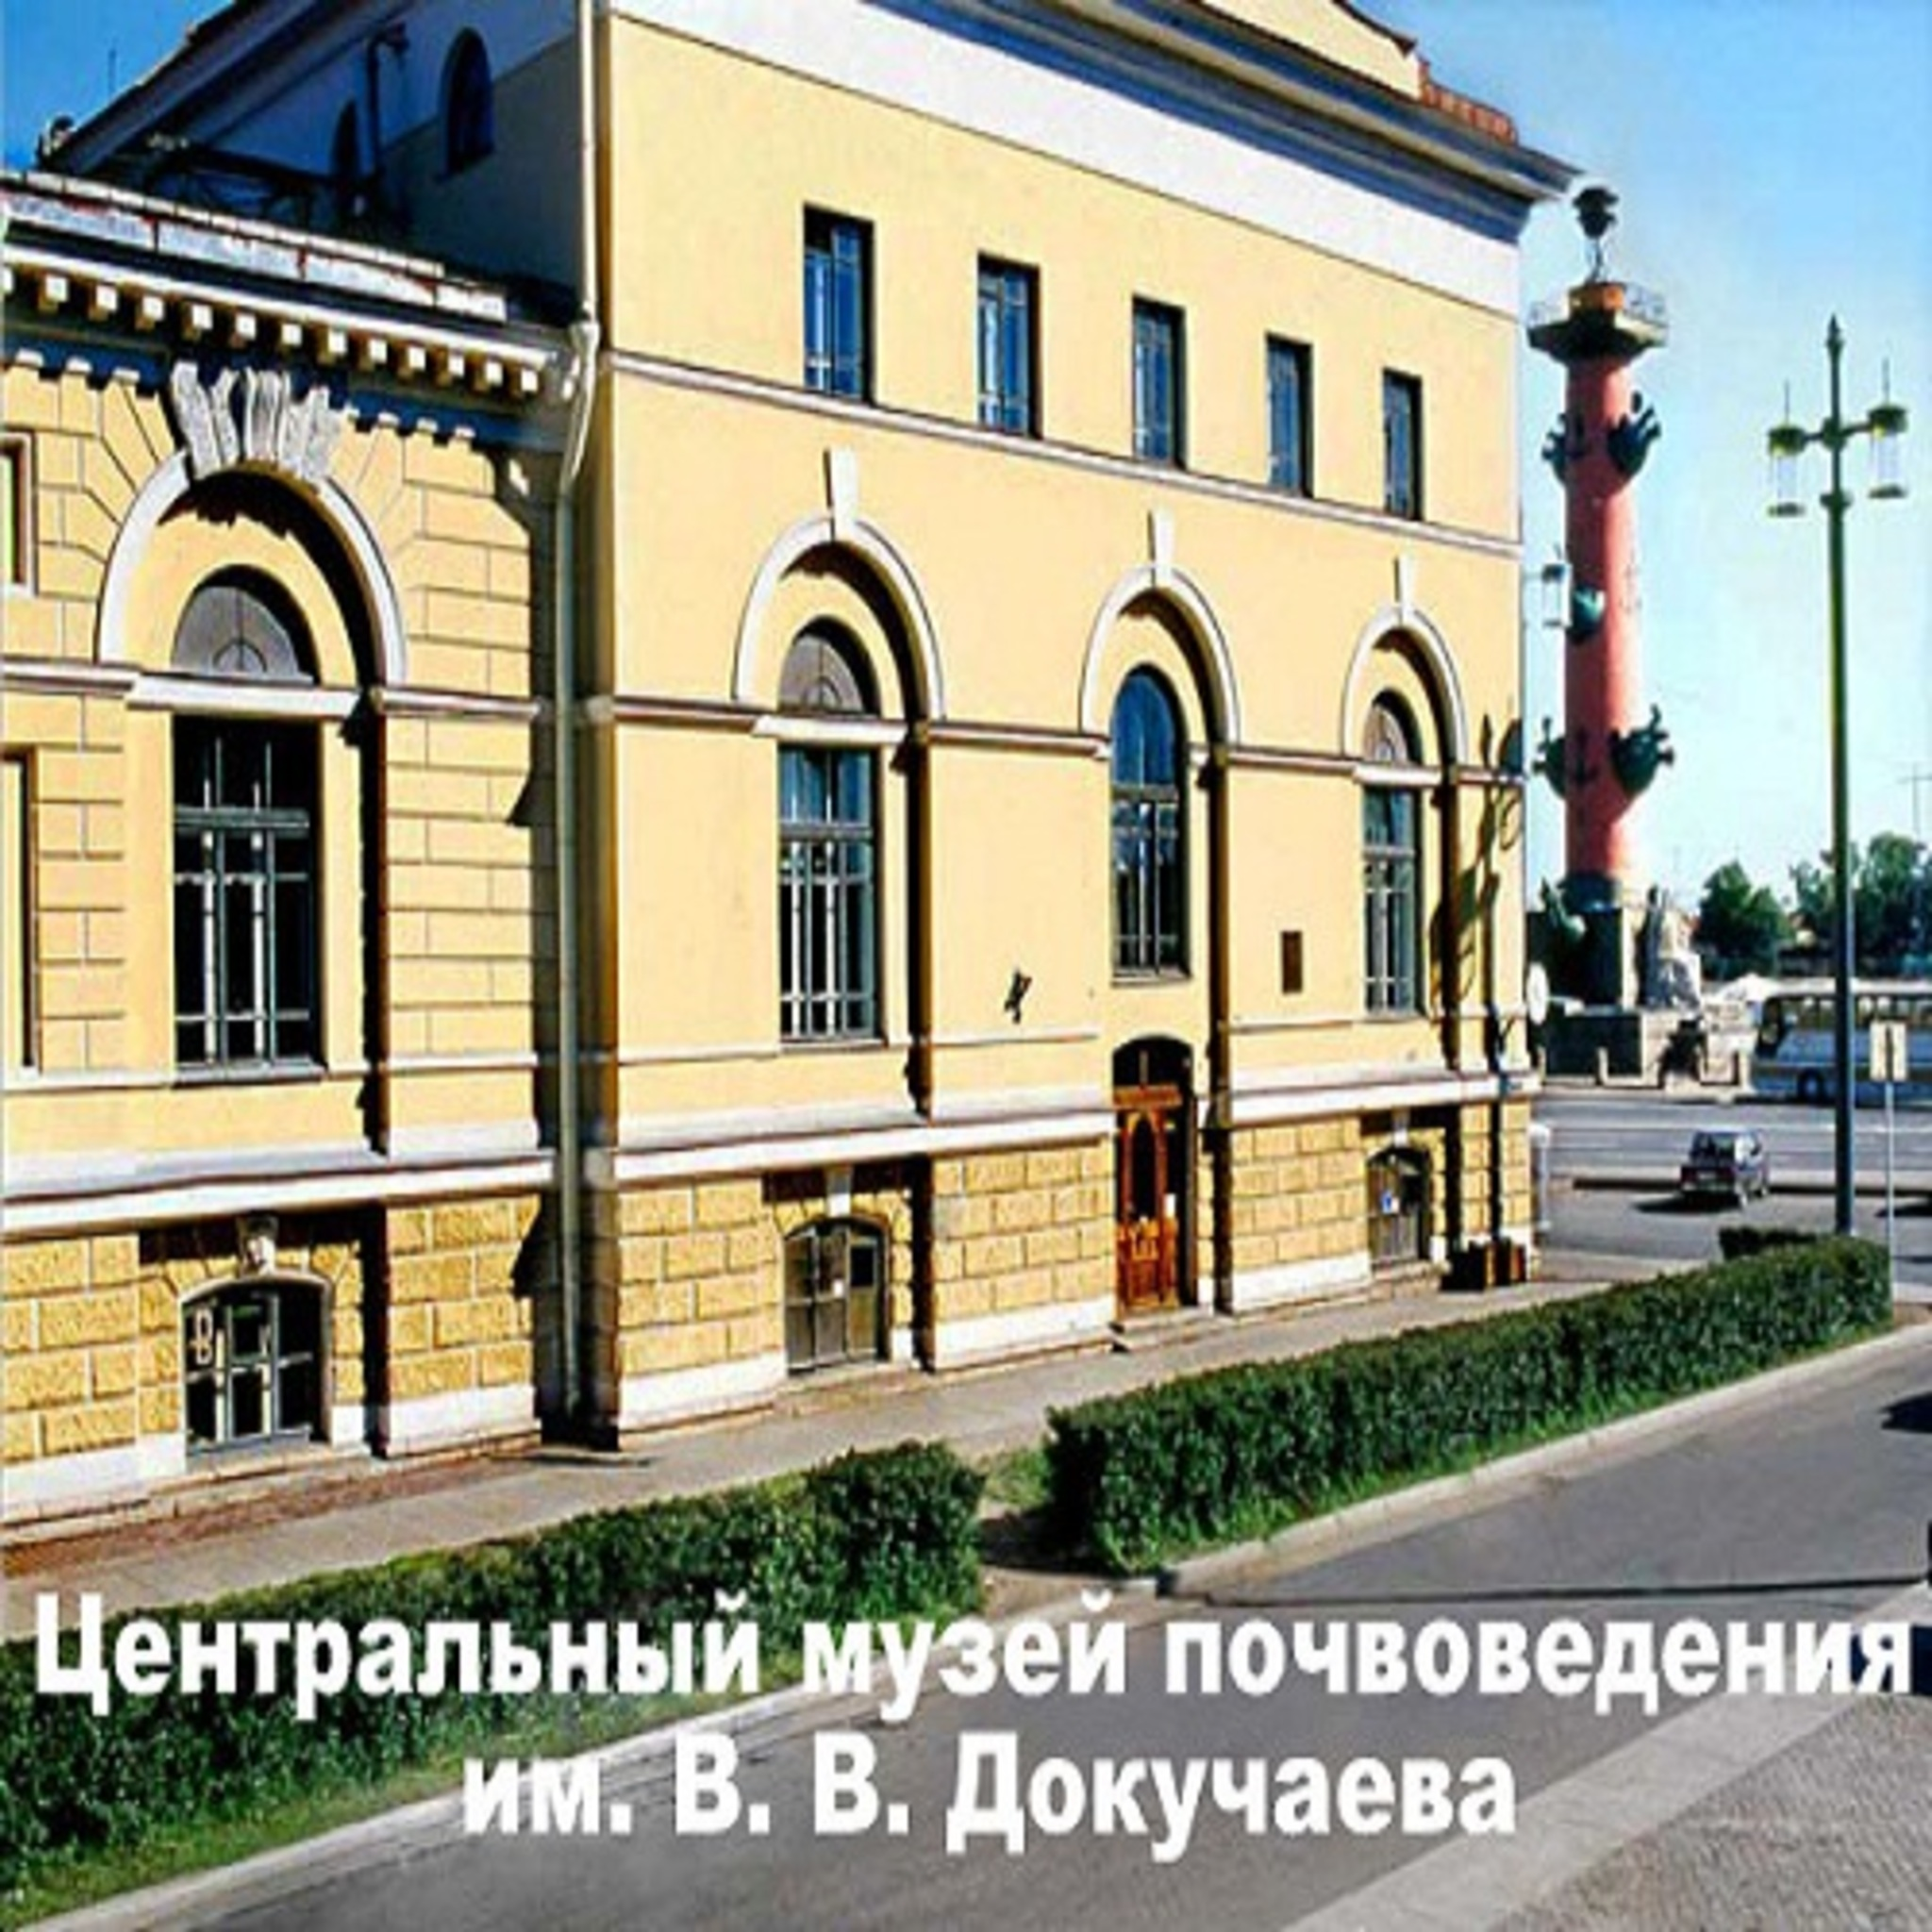 Central Museum of soil science named after V. V. Dokuchaev